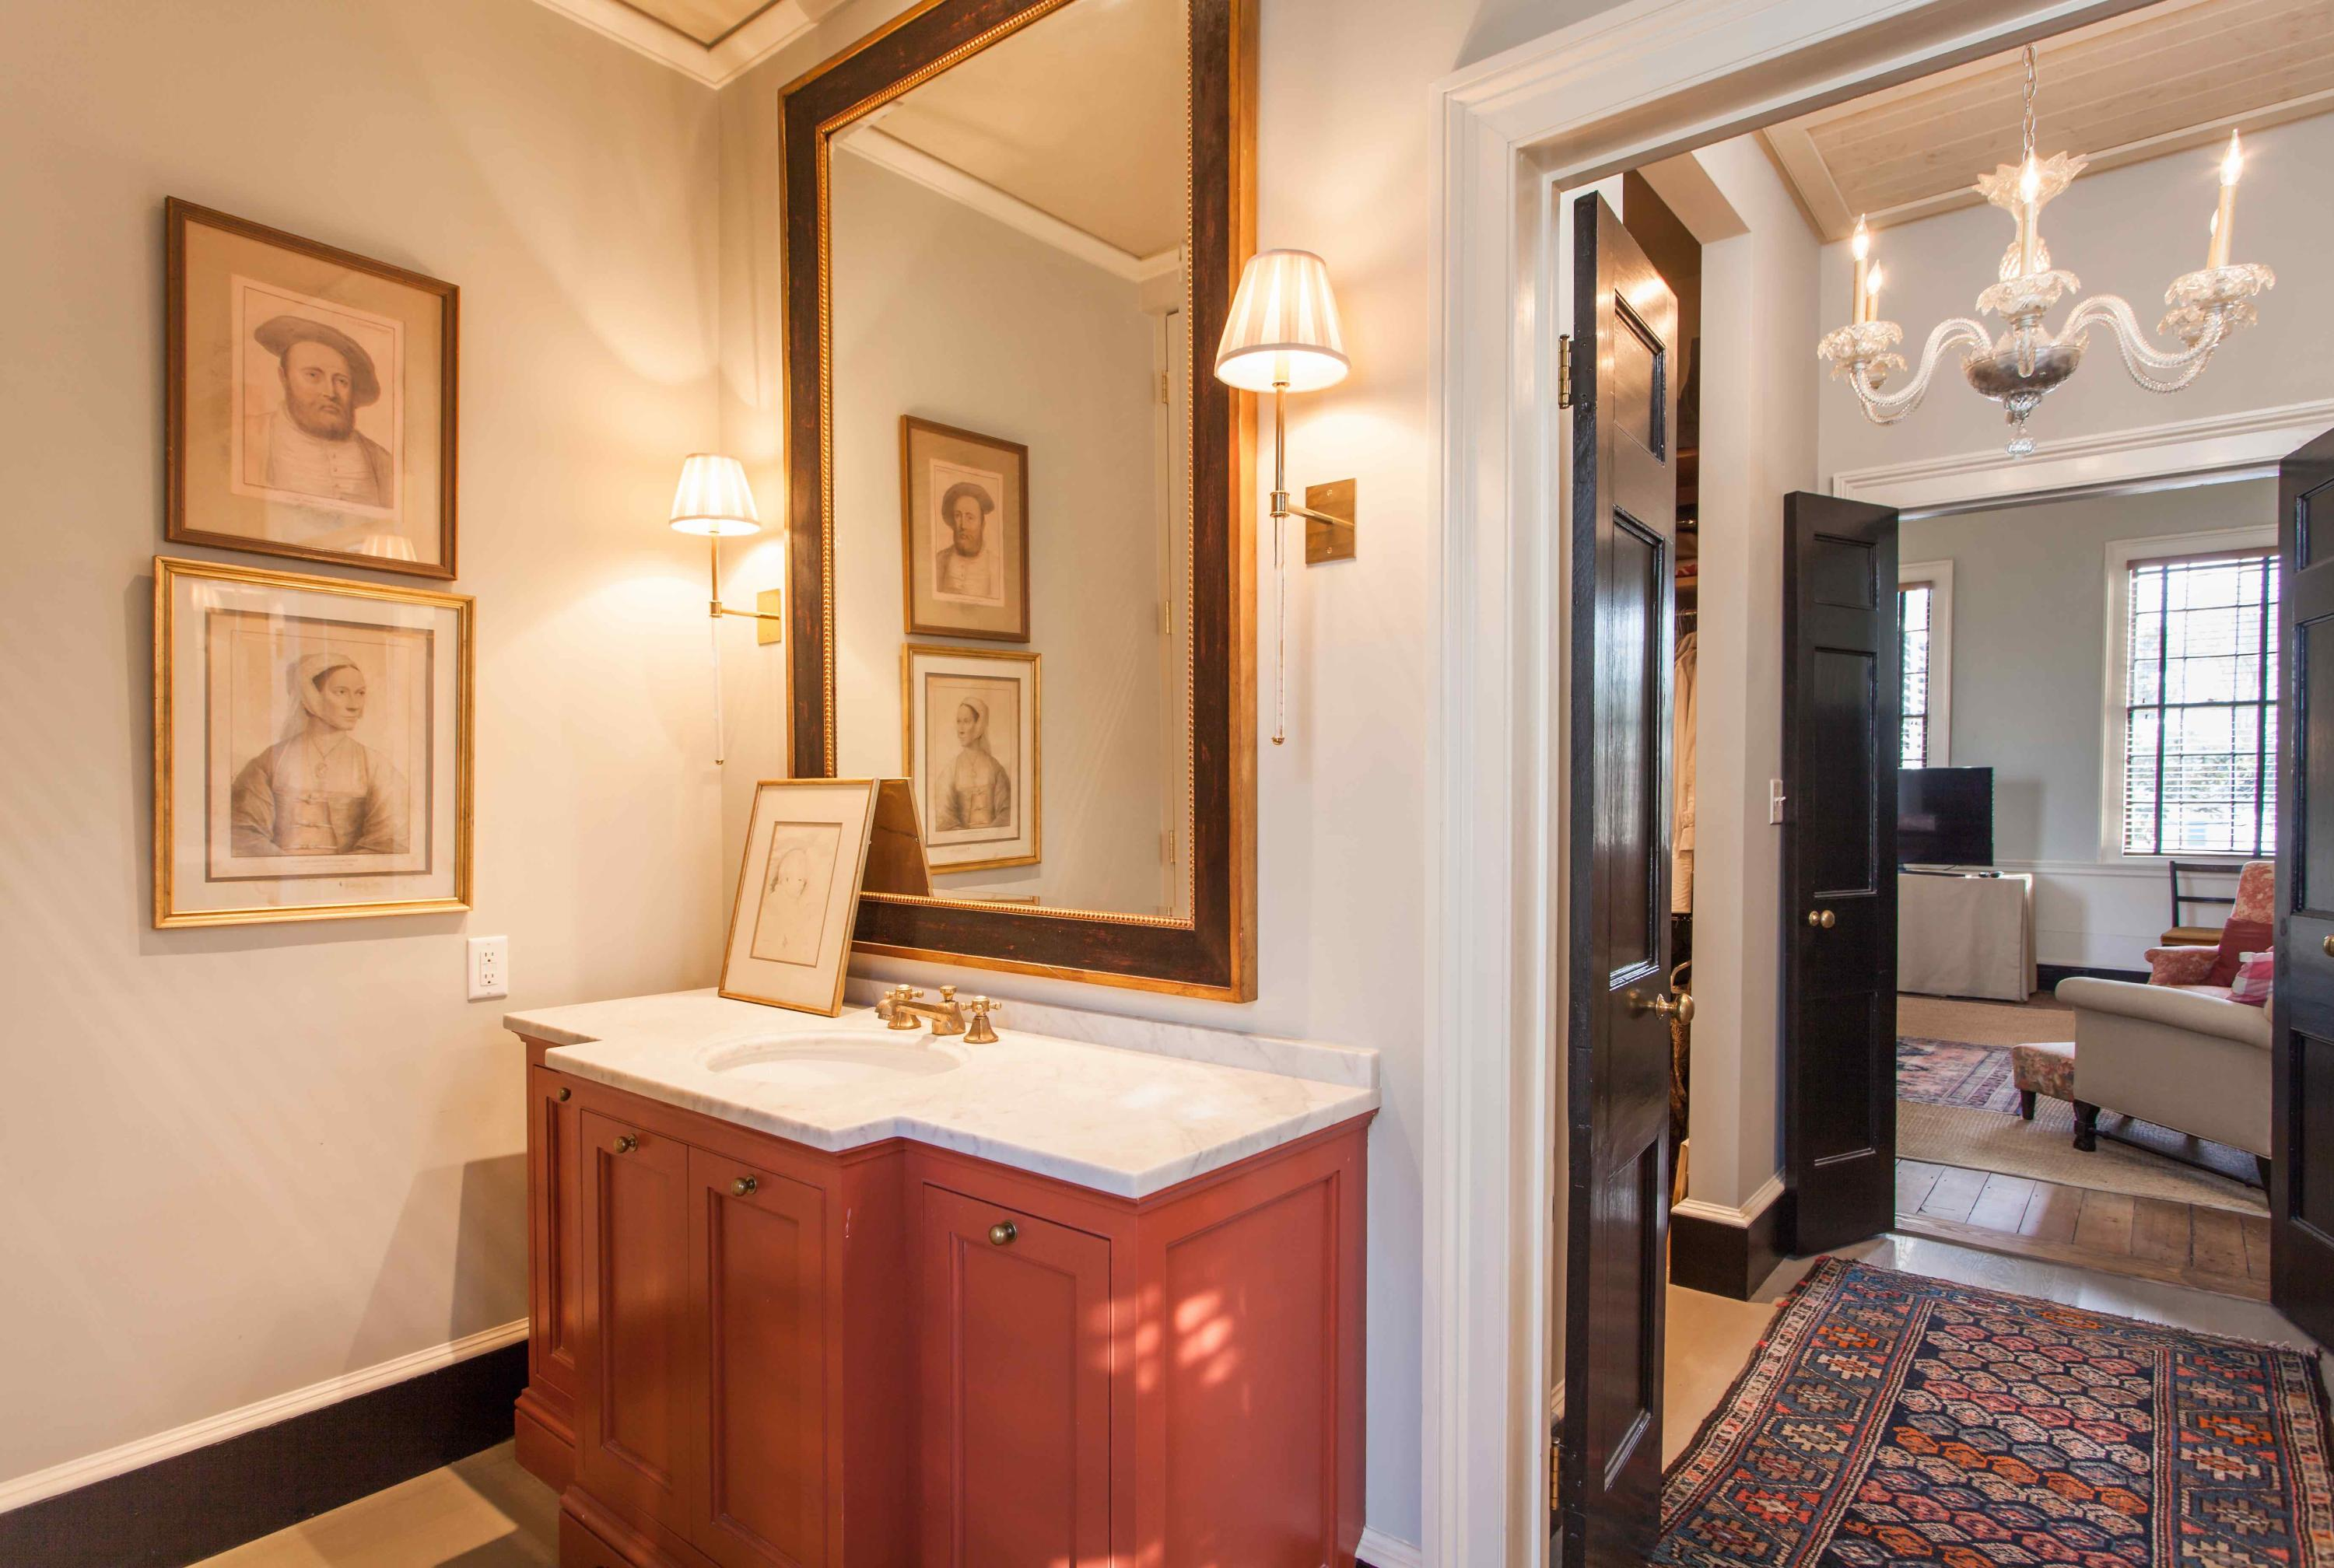 South of Broad Homes For Sale - 58 South Battery, Charleston, SC - 31